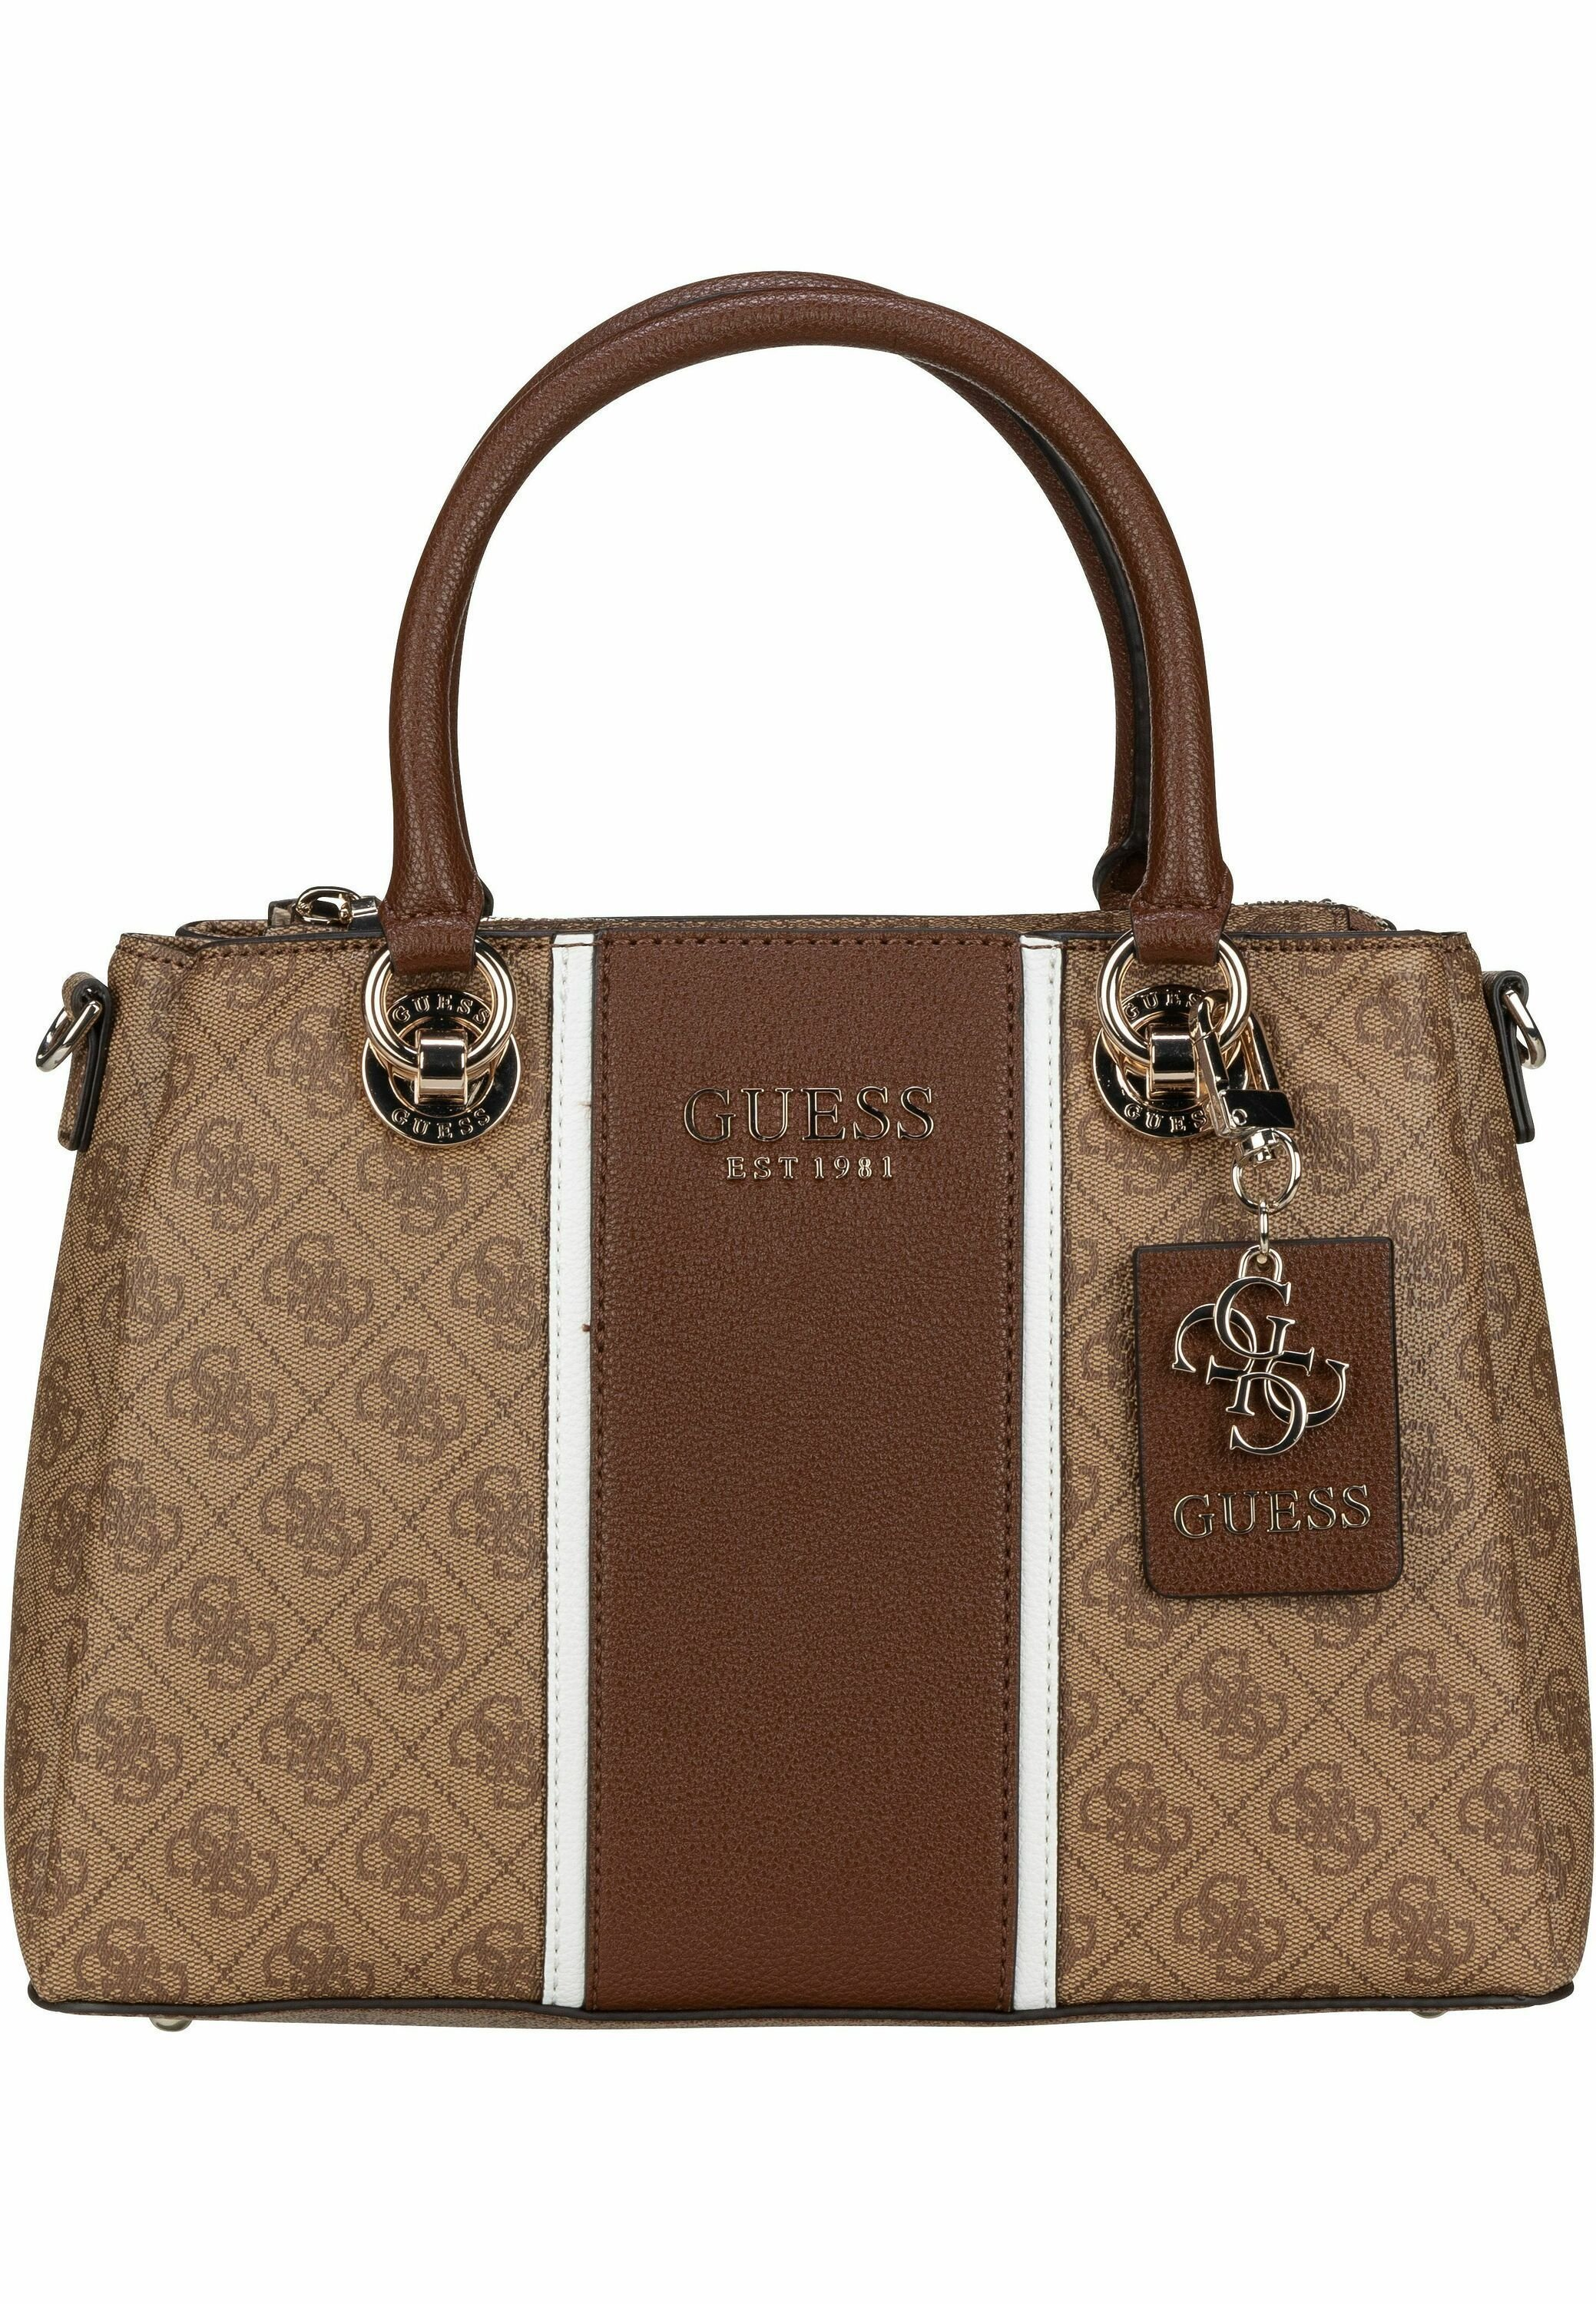 Guess Cathleen Compartment - Handtasche Brown/braun